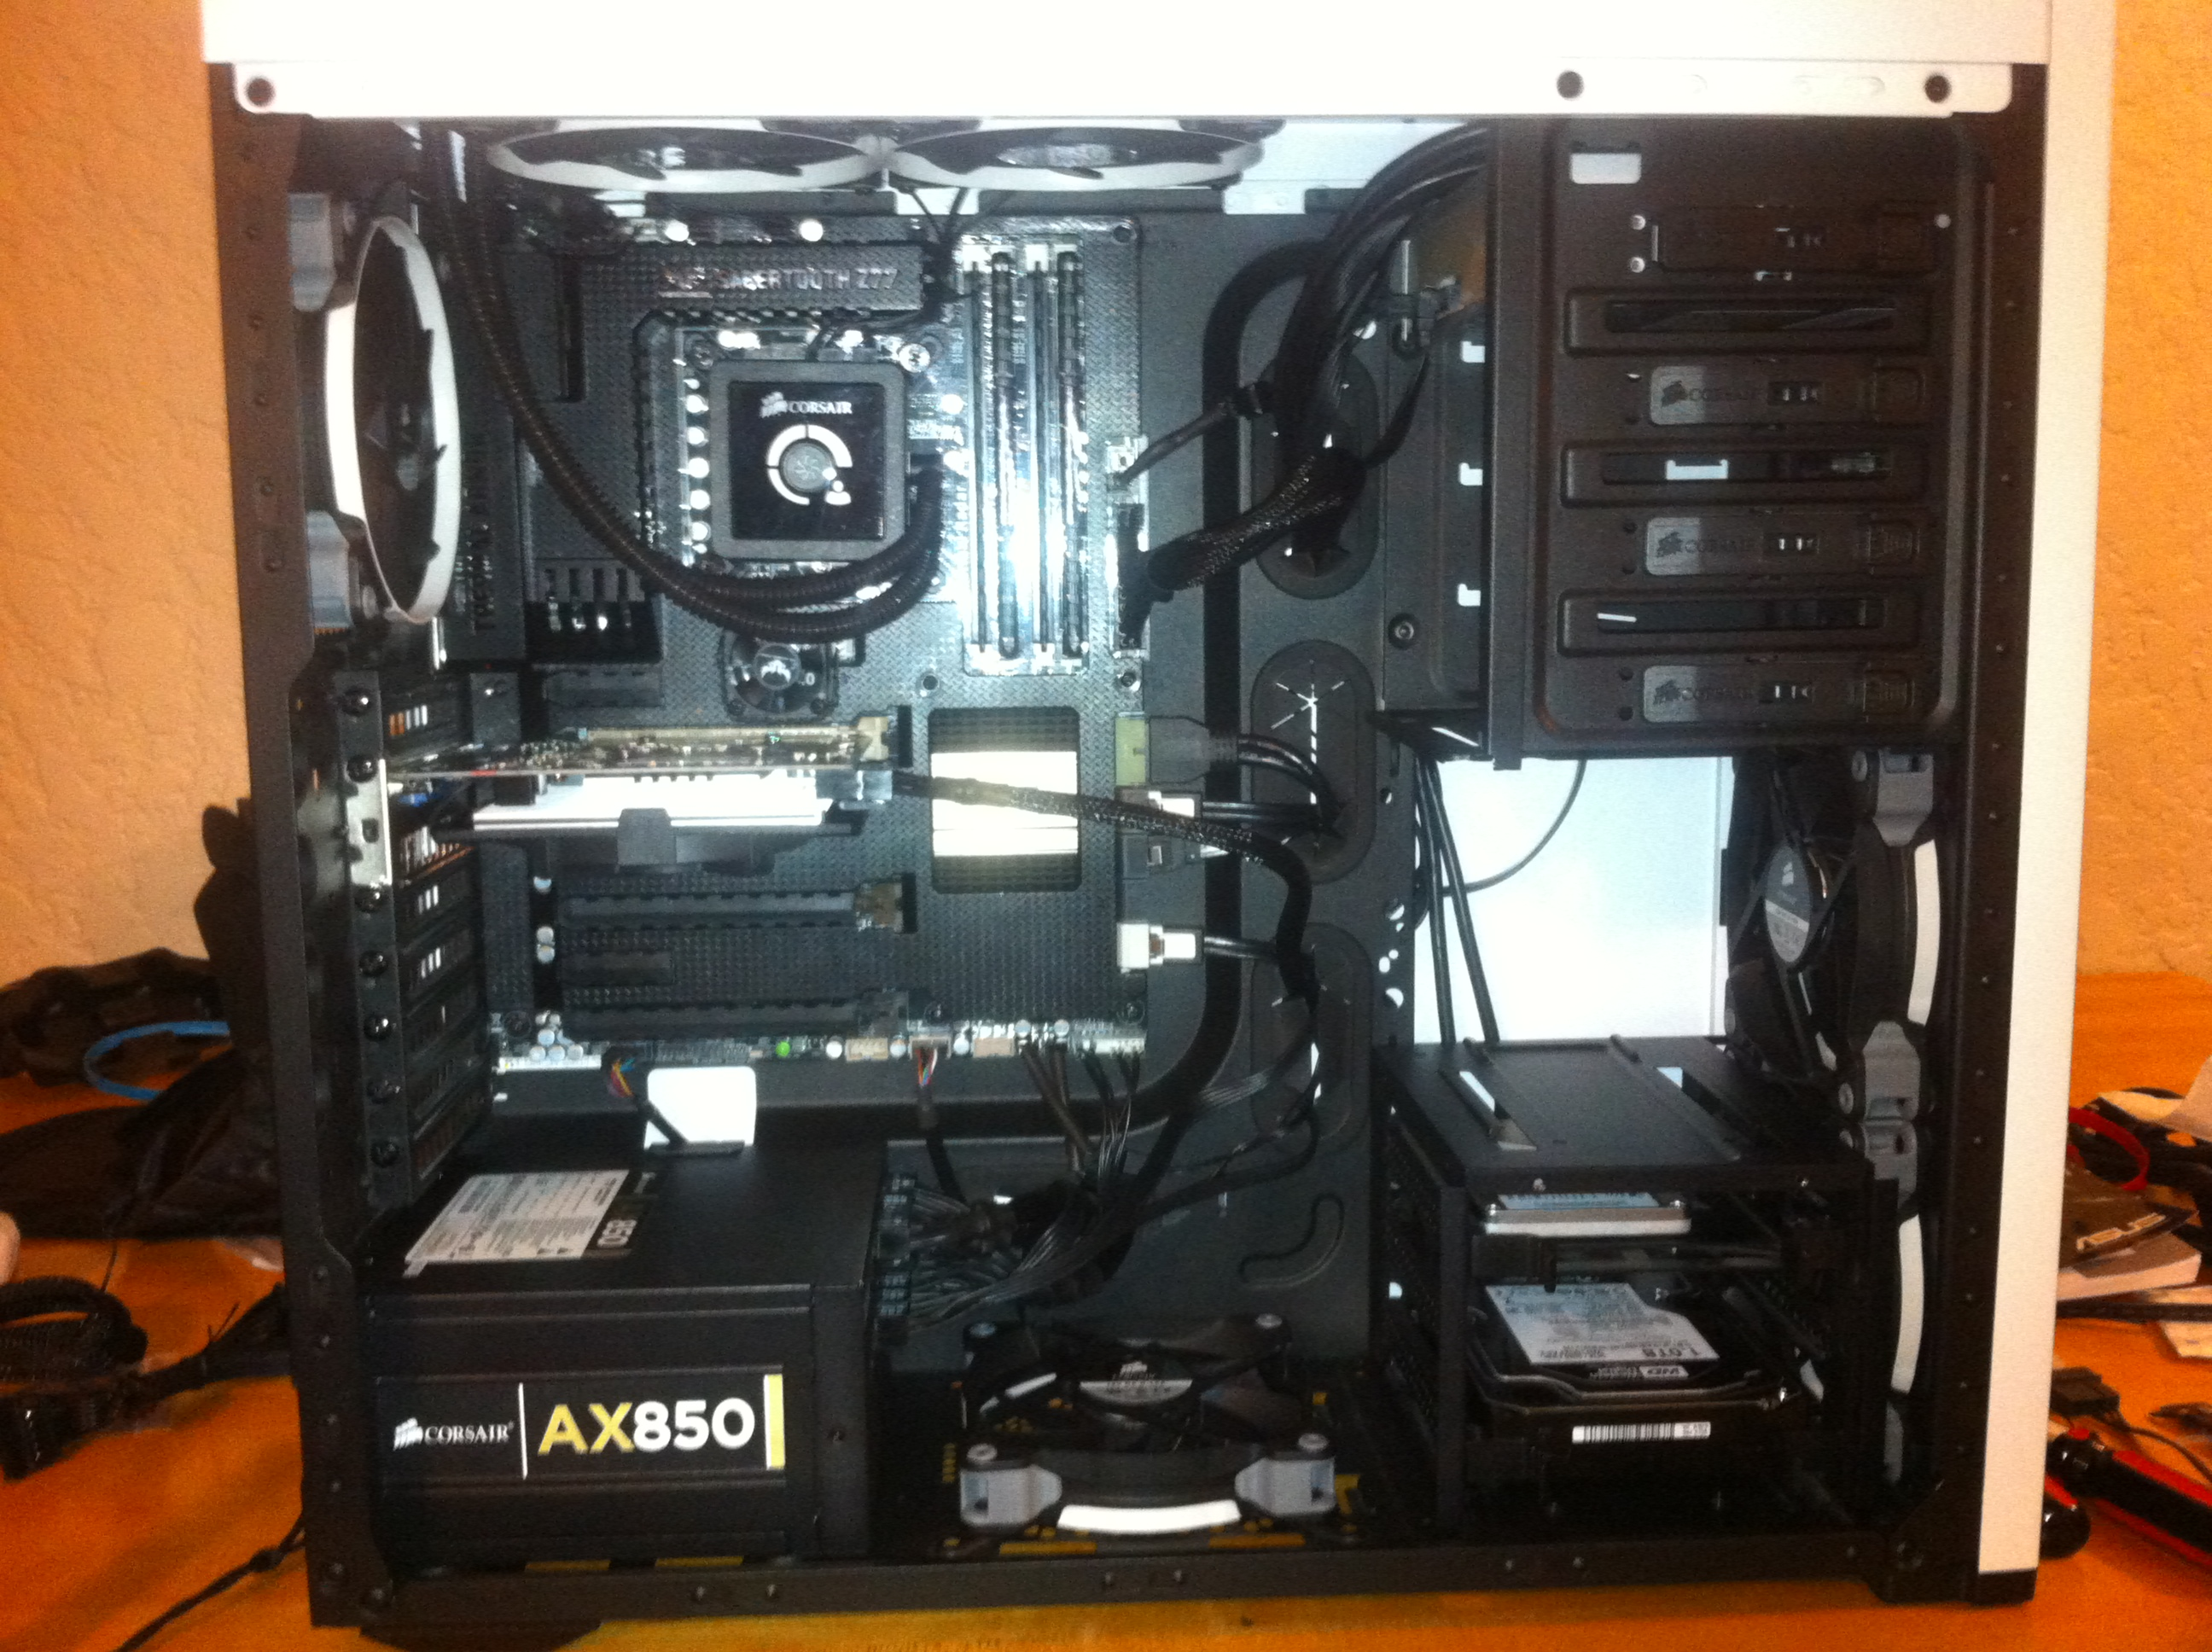 Raw build, with some cable management but no visual flair.